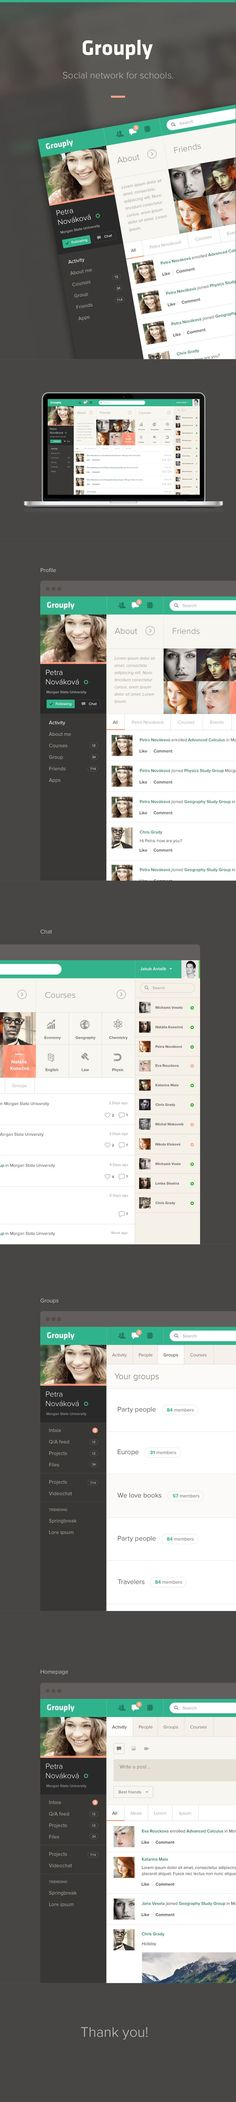 Grouply UI/UX, Web Design #flat. If you like UX, design, or design thinking, check out theuxblog.com